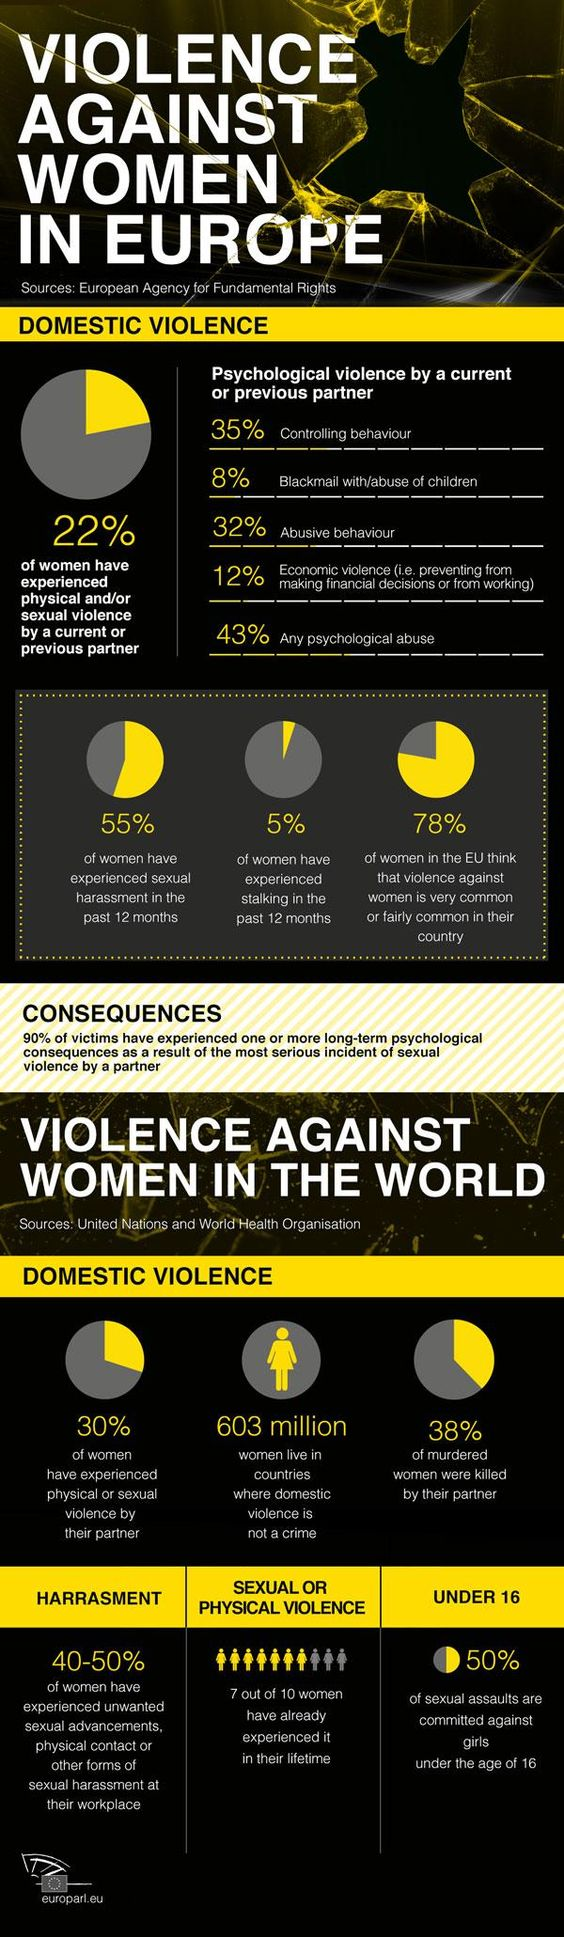 violence-against-women-in-europe-infographic